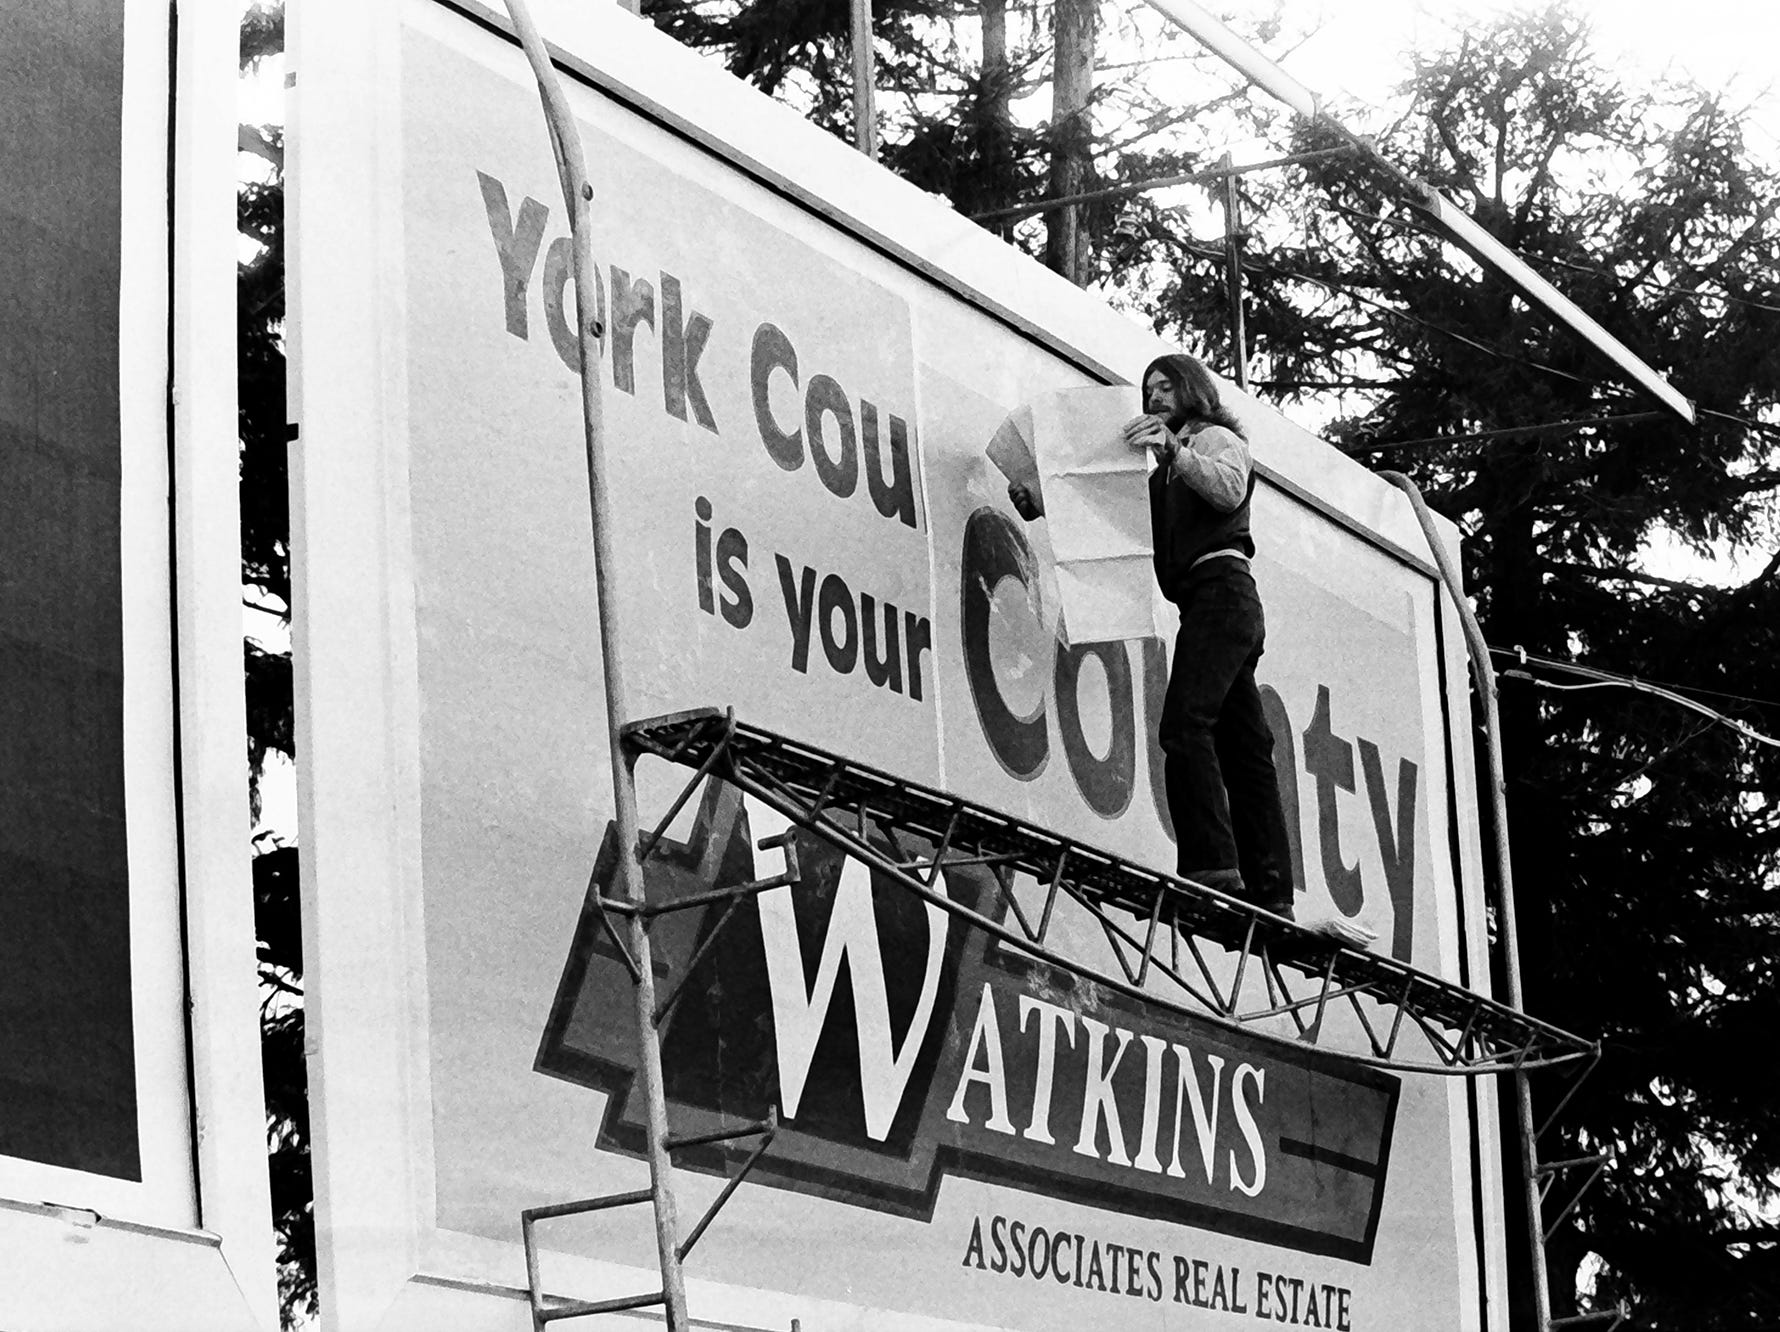 In 1985, York County was growing in population.  Ed Dempsey of Penn Advertising installs a new billboard.